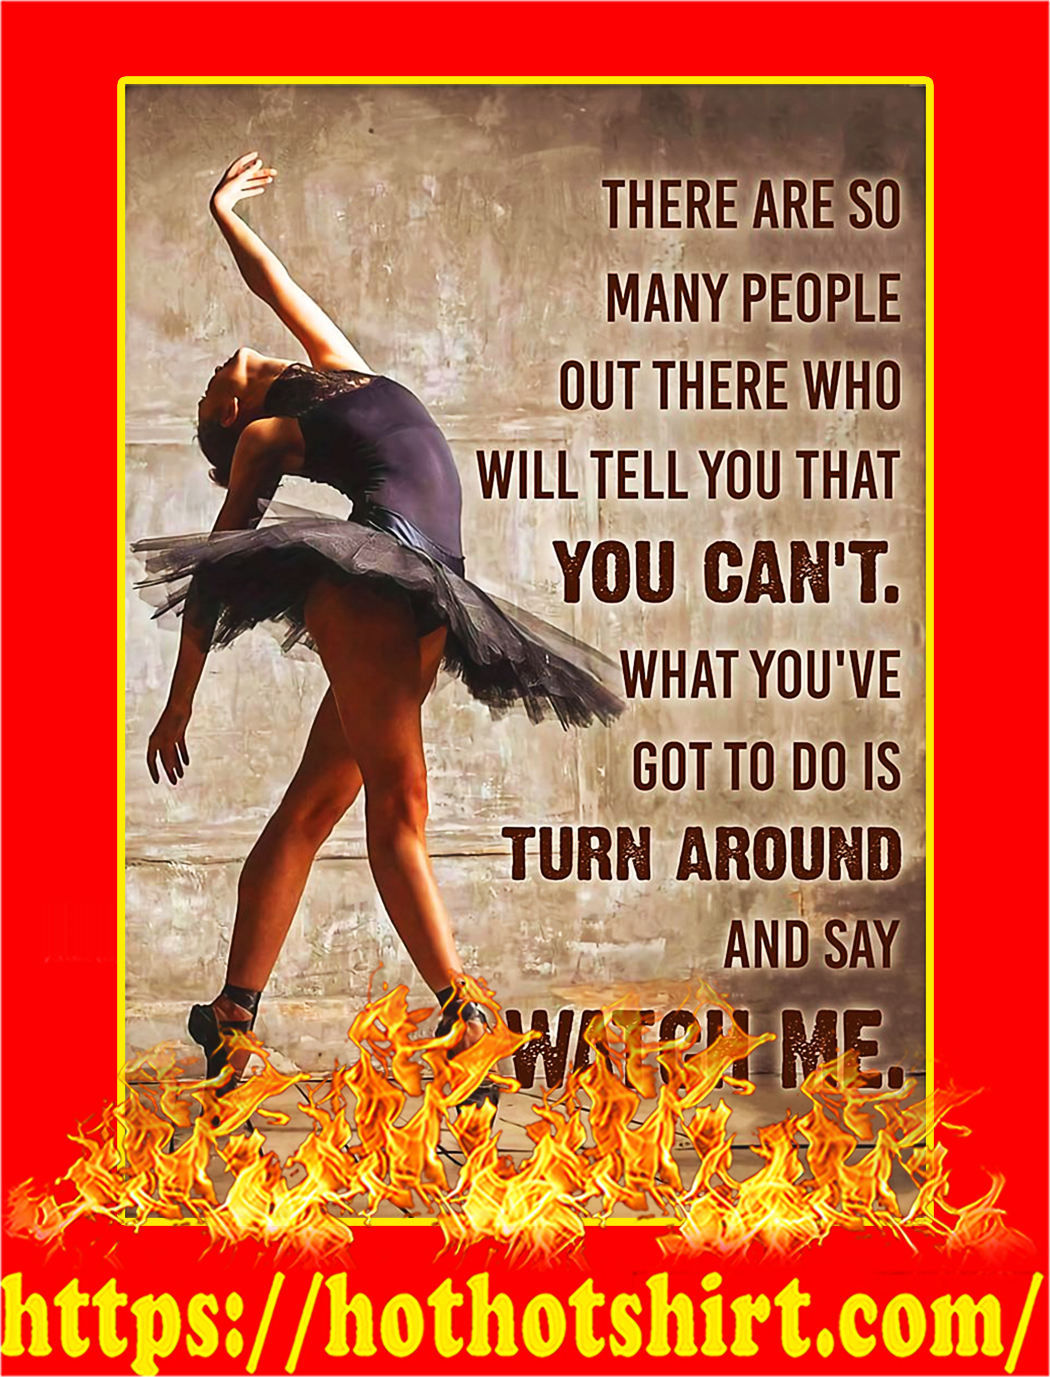 Ballet dancer there are so many people out there poster - A3